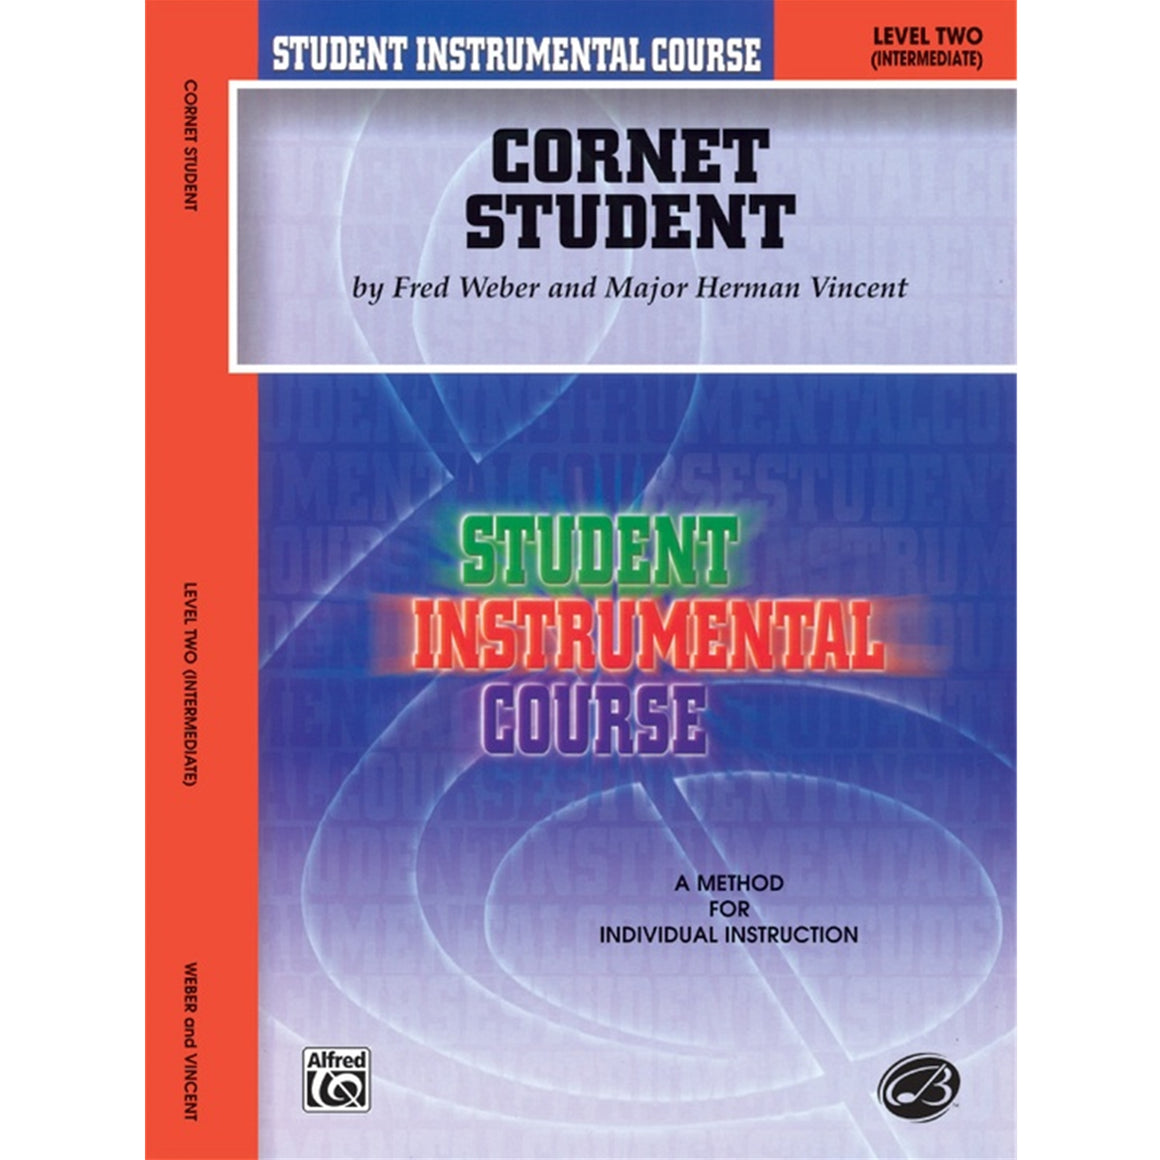 ALFRED BIC00246A Student Instrumental Course: Cornet Student, Level II [Trumpet]